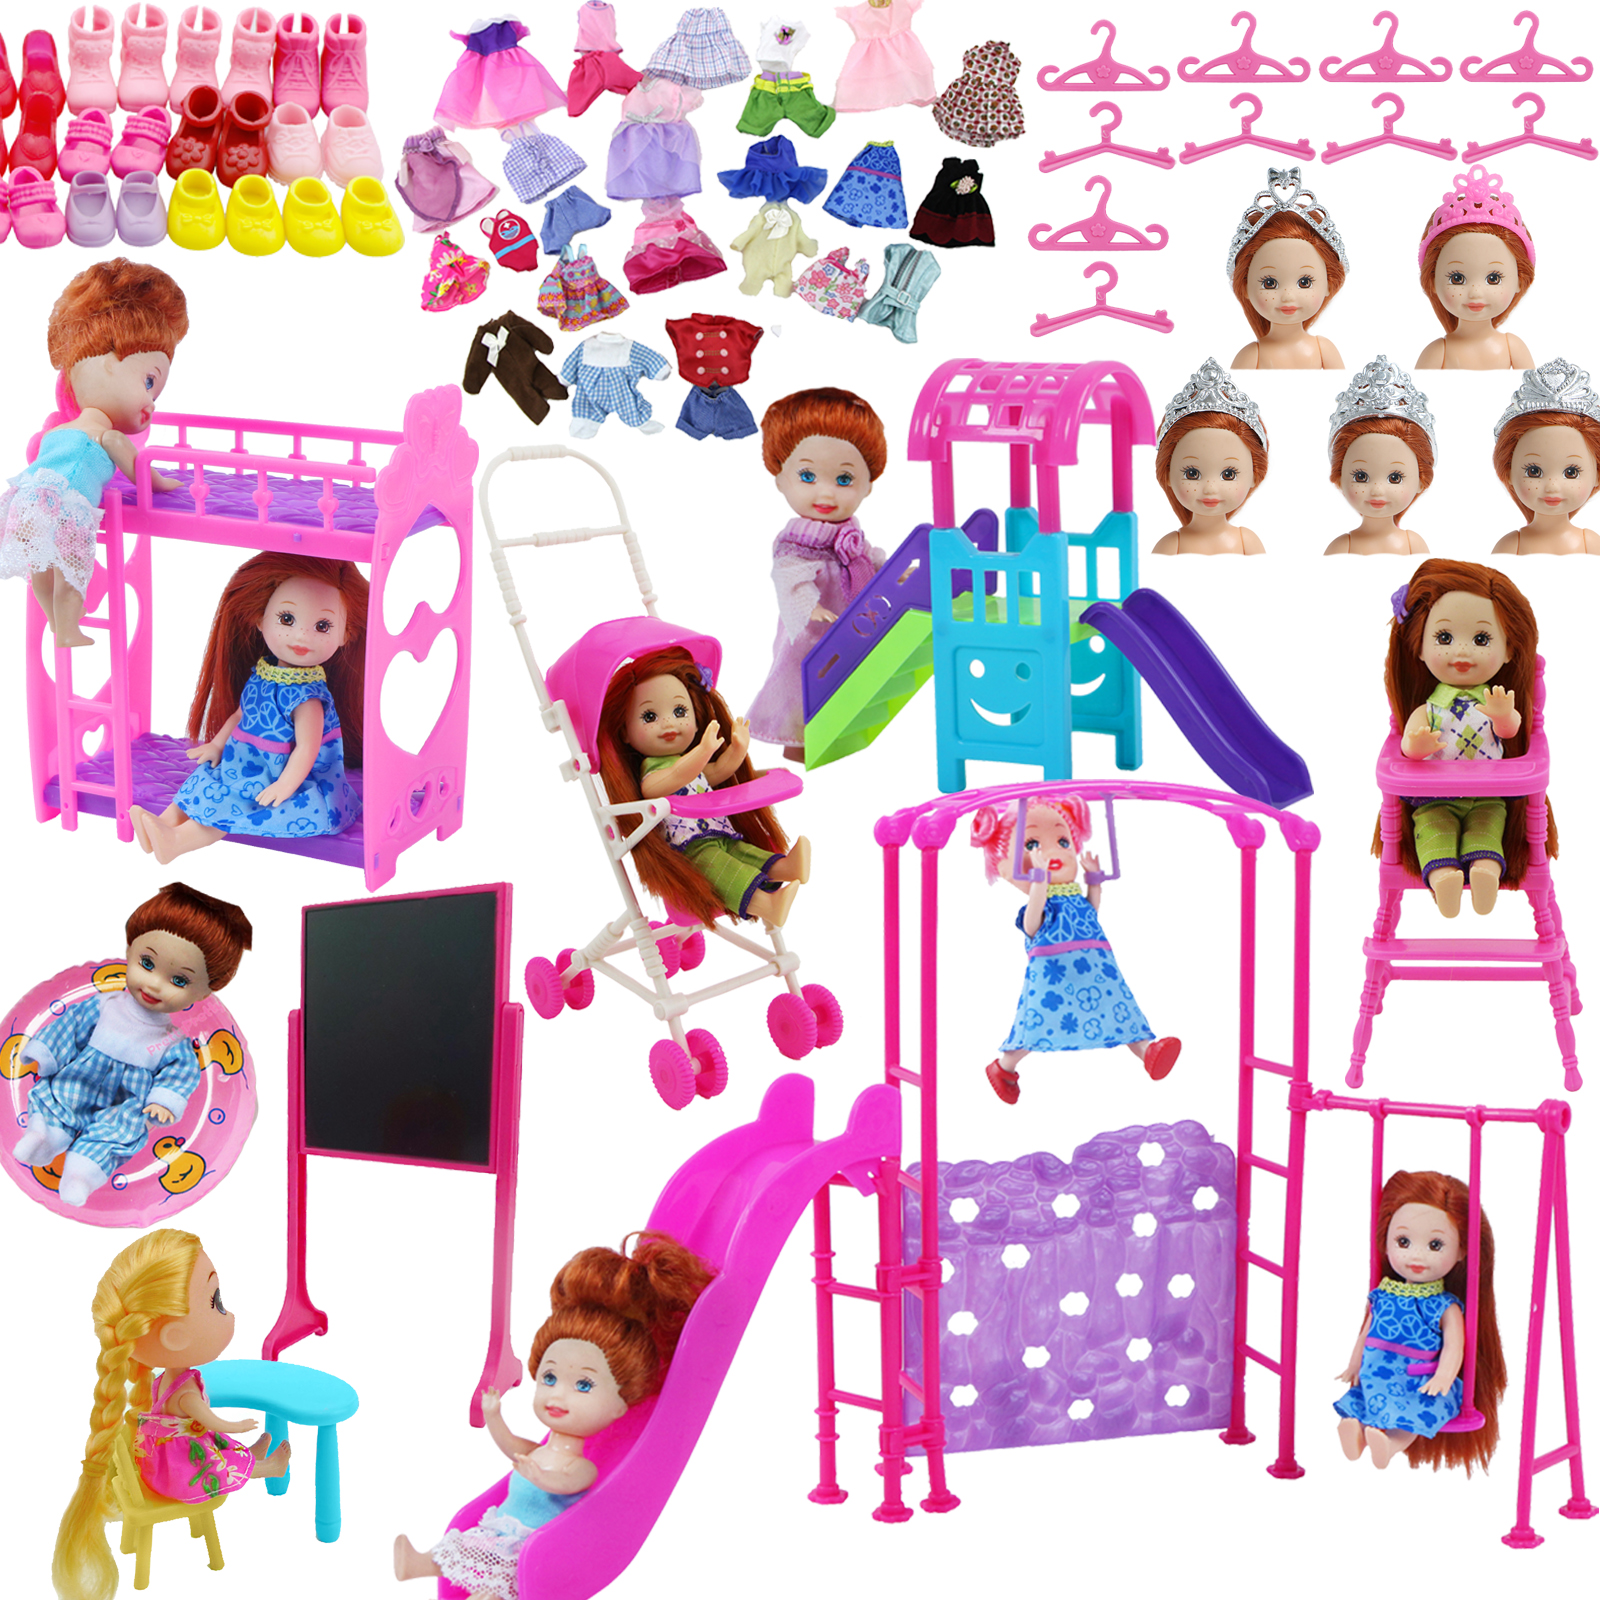 Nursery Pretend Play Toy Baby Bed Chair Doll Furniture Clothes Shoes For Barbie Doll Kelly Dollhouse Accessories Girl Toy Set